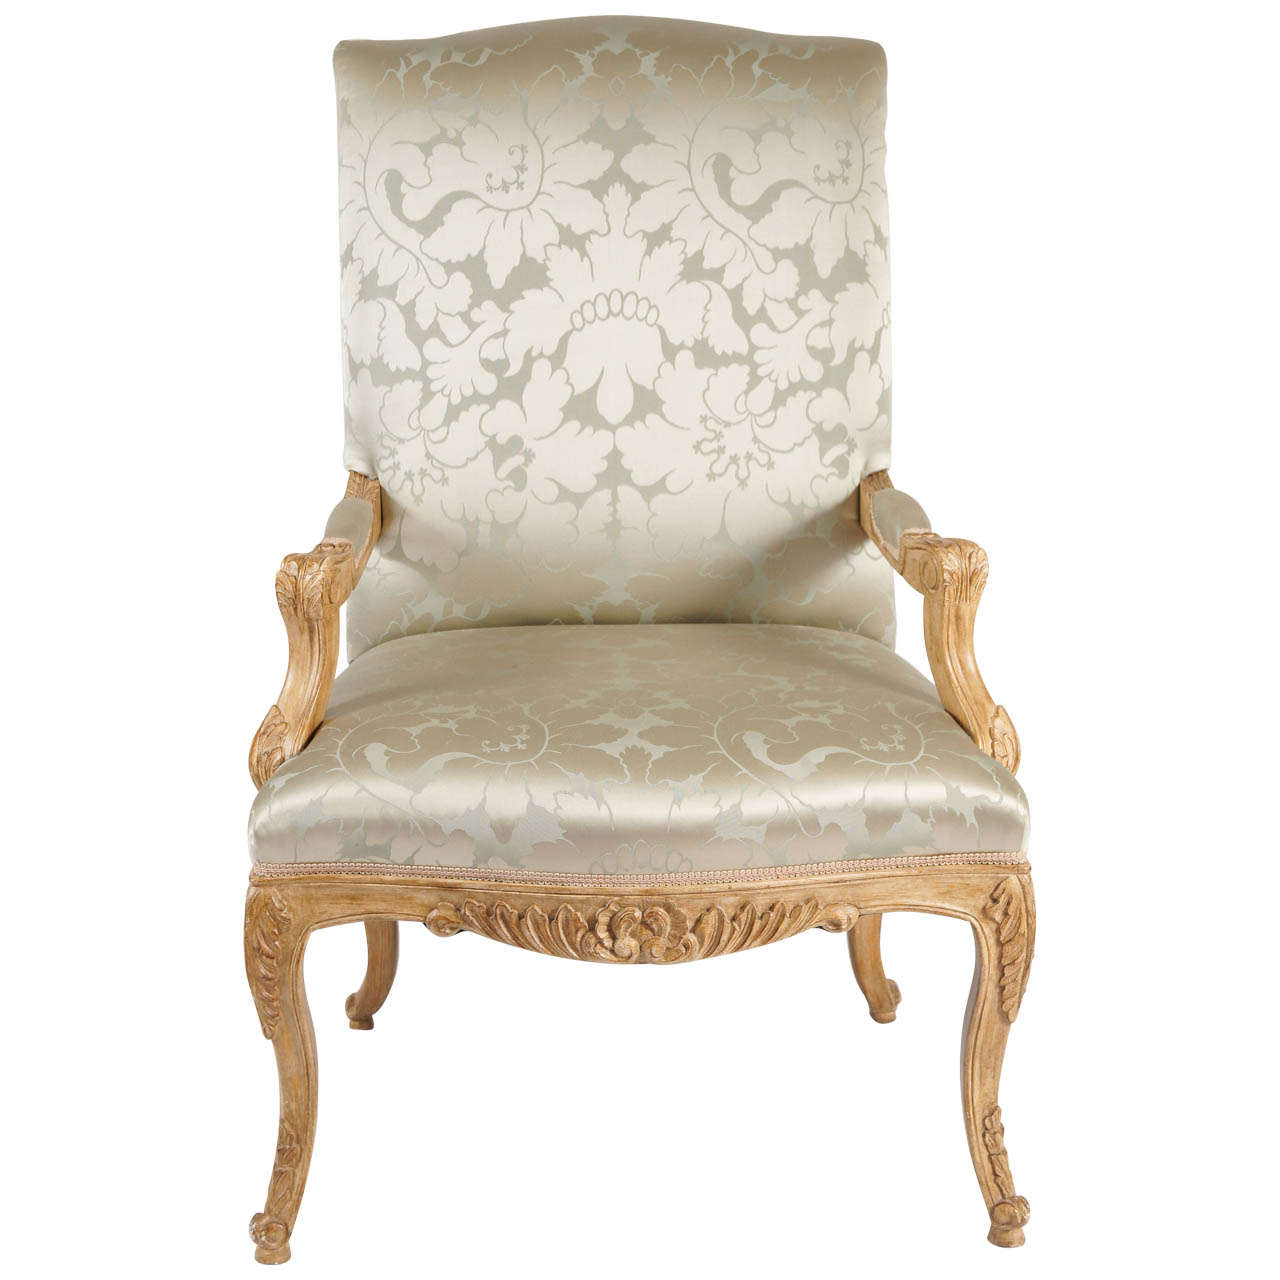 Louis XIV Style Chair Silk Damask Upholstery For Sale  sc 1 st  1stDibs & Louis XIV Style Chair Silk Damask Upholstery For Sale at 1stdibs